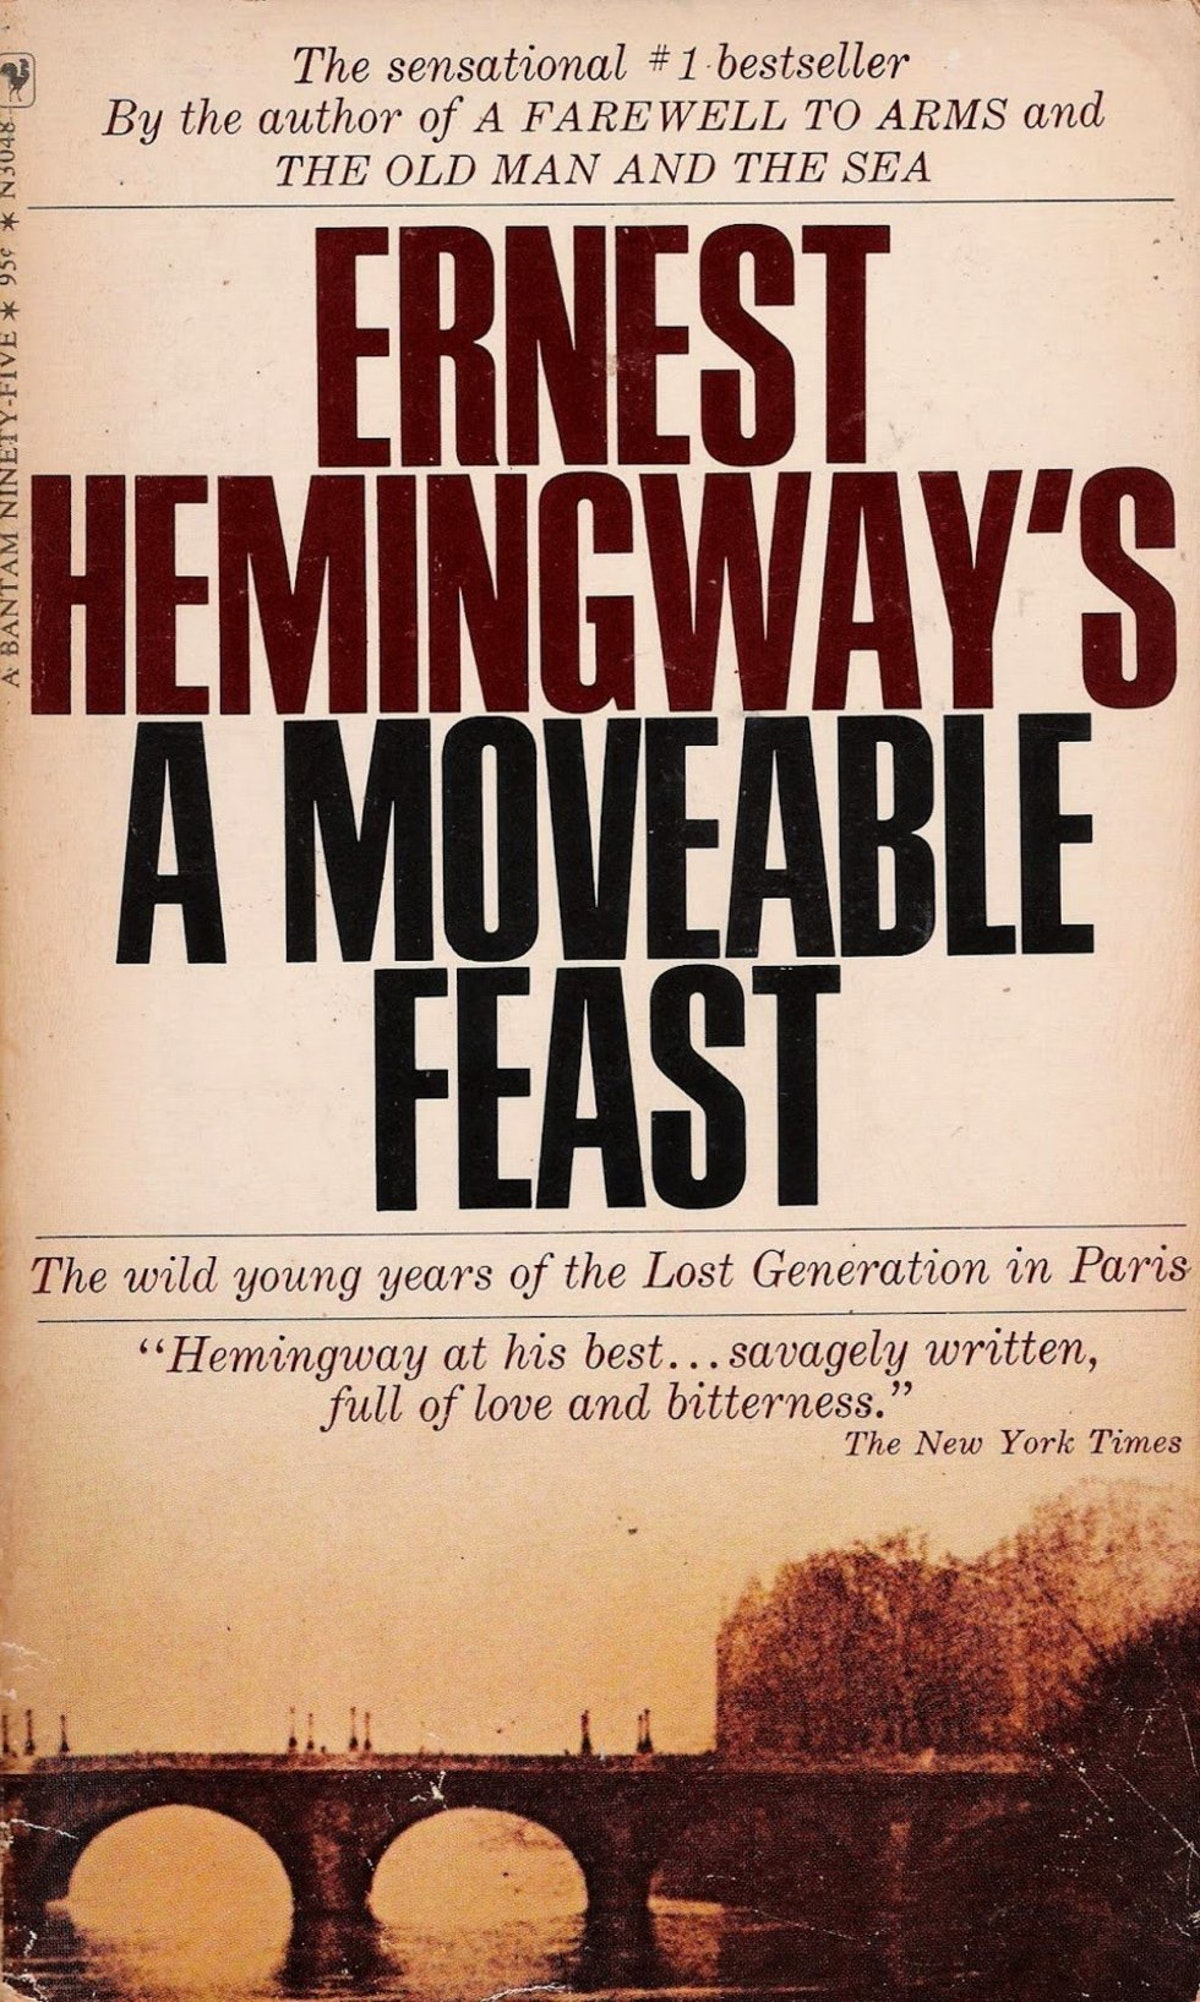 end something ernest hemingway essays Read this essay on ernest hemingway's end of something come browse our large digital warehouse of free sample essays get the knowledge you need in order to pass your classes and more only at termpaperwarehousecom.